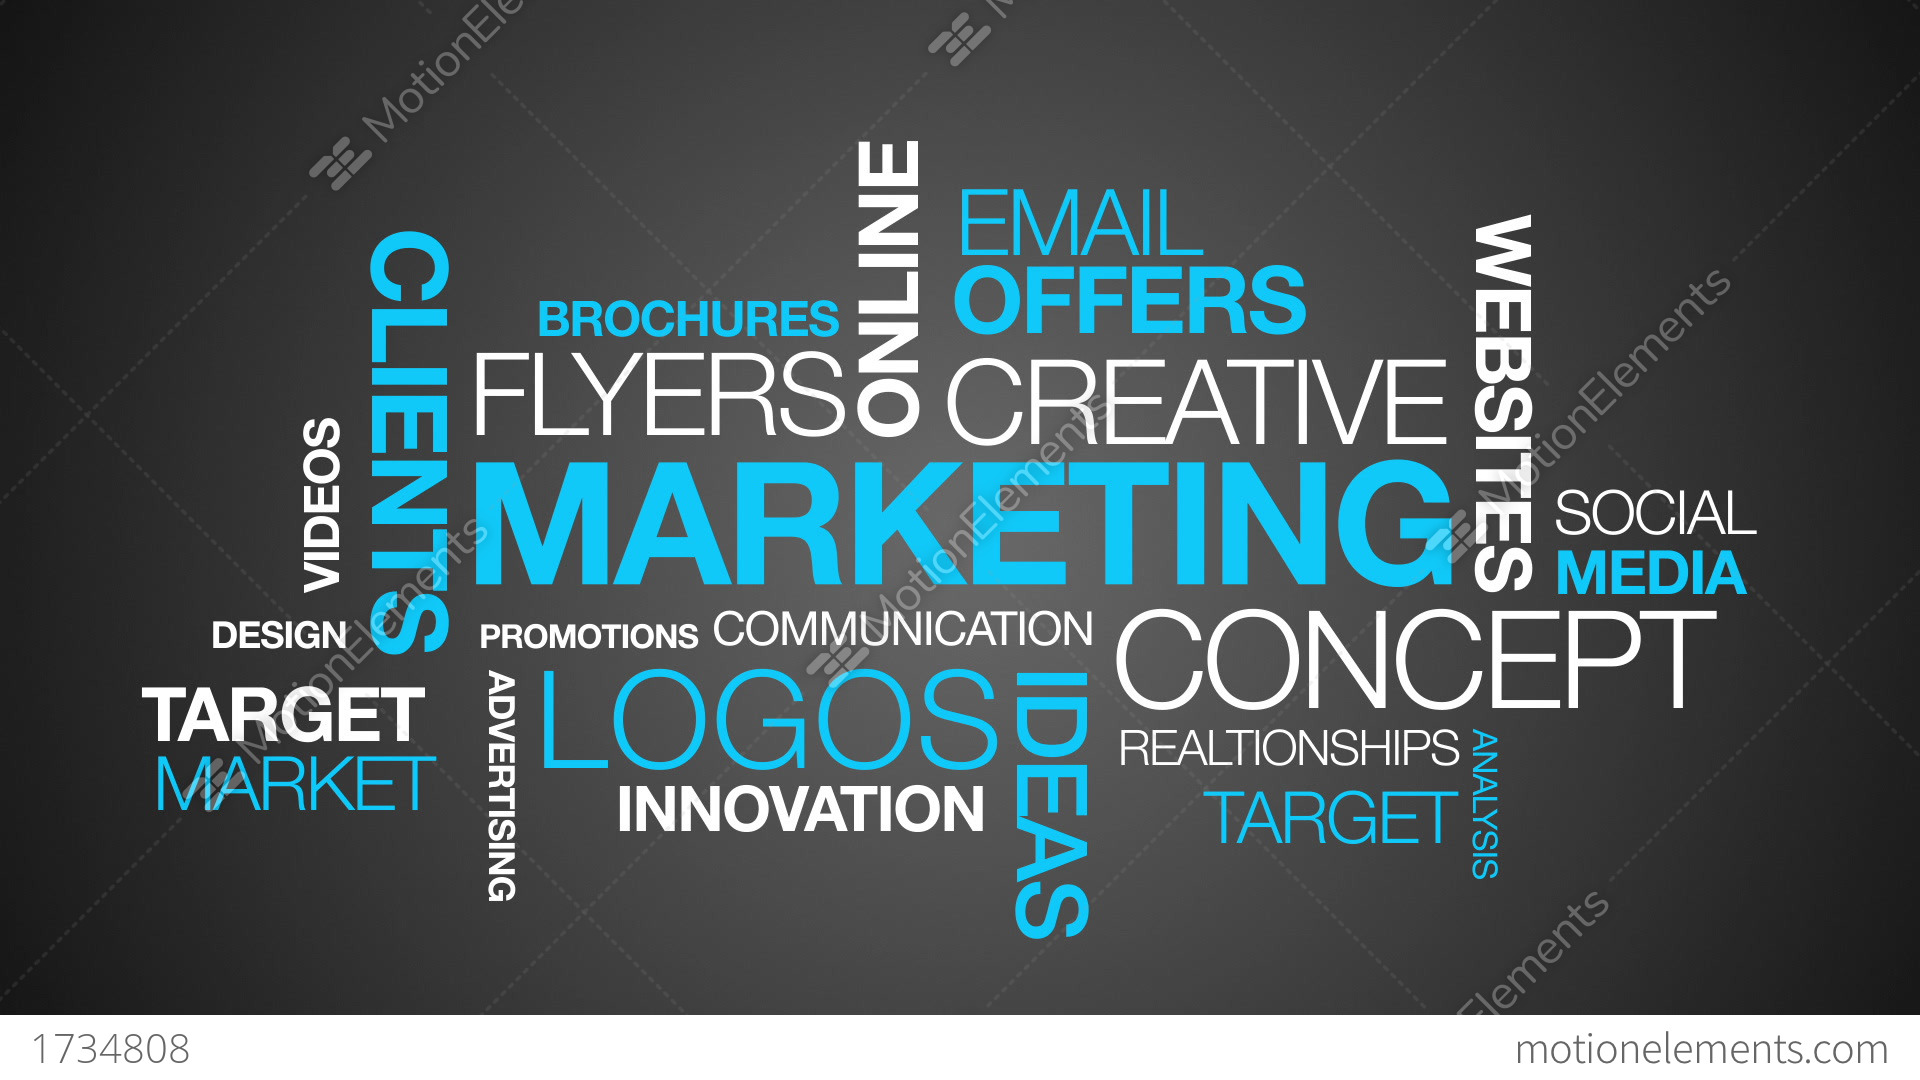 p hd thesis in marketing Universities understand these limitations, and more often, they are developing phd programs without dissertation requirements, or 1 year online doctoral programs, that will allow students to get their credentials more efficiently.